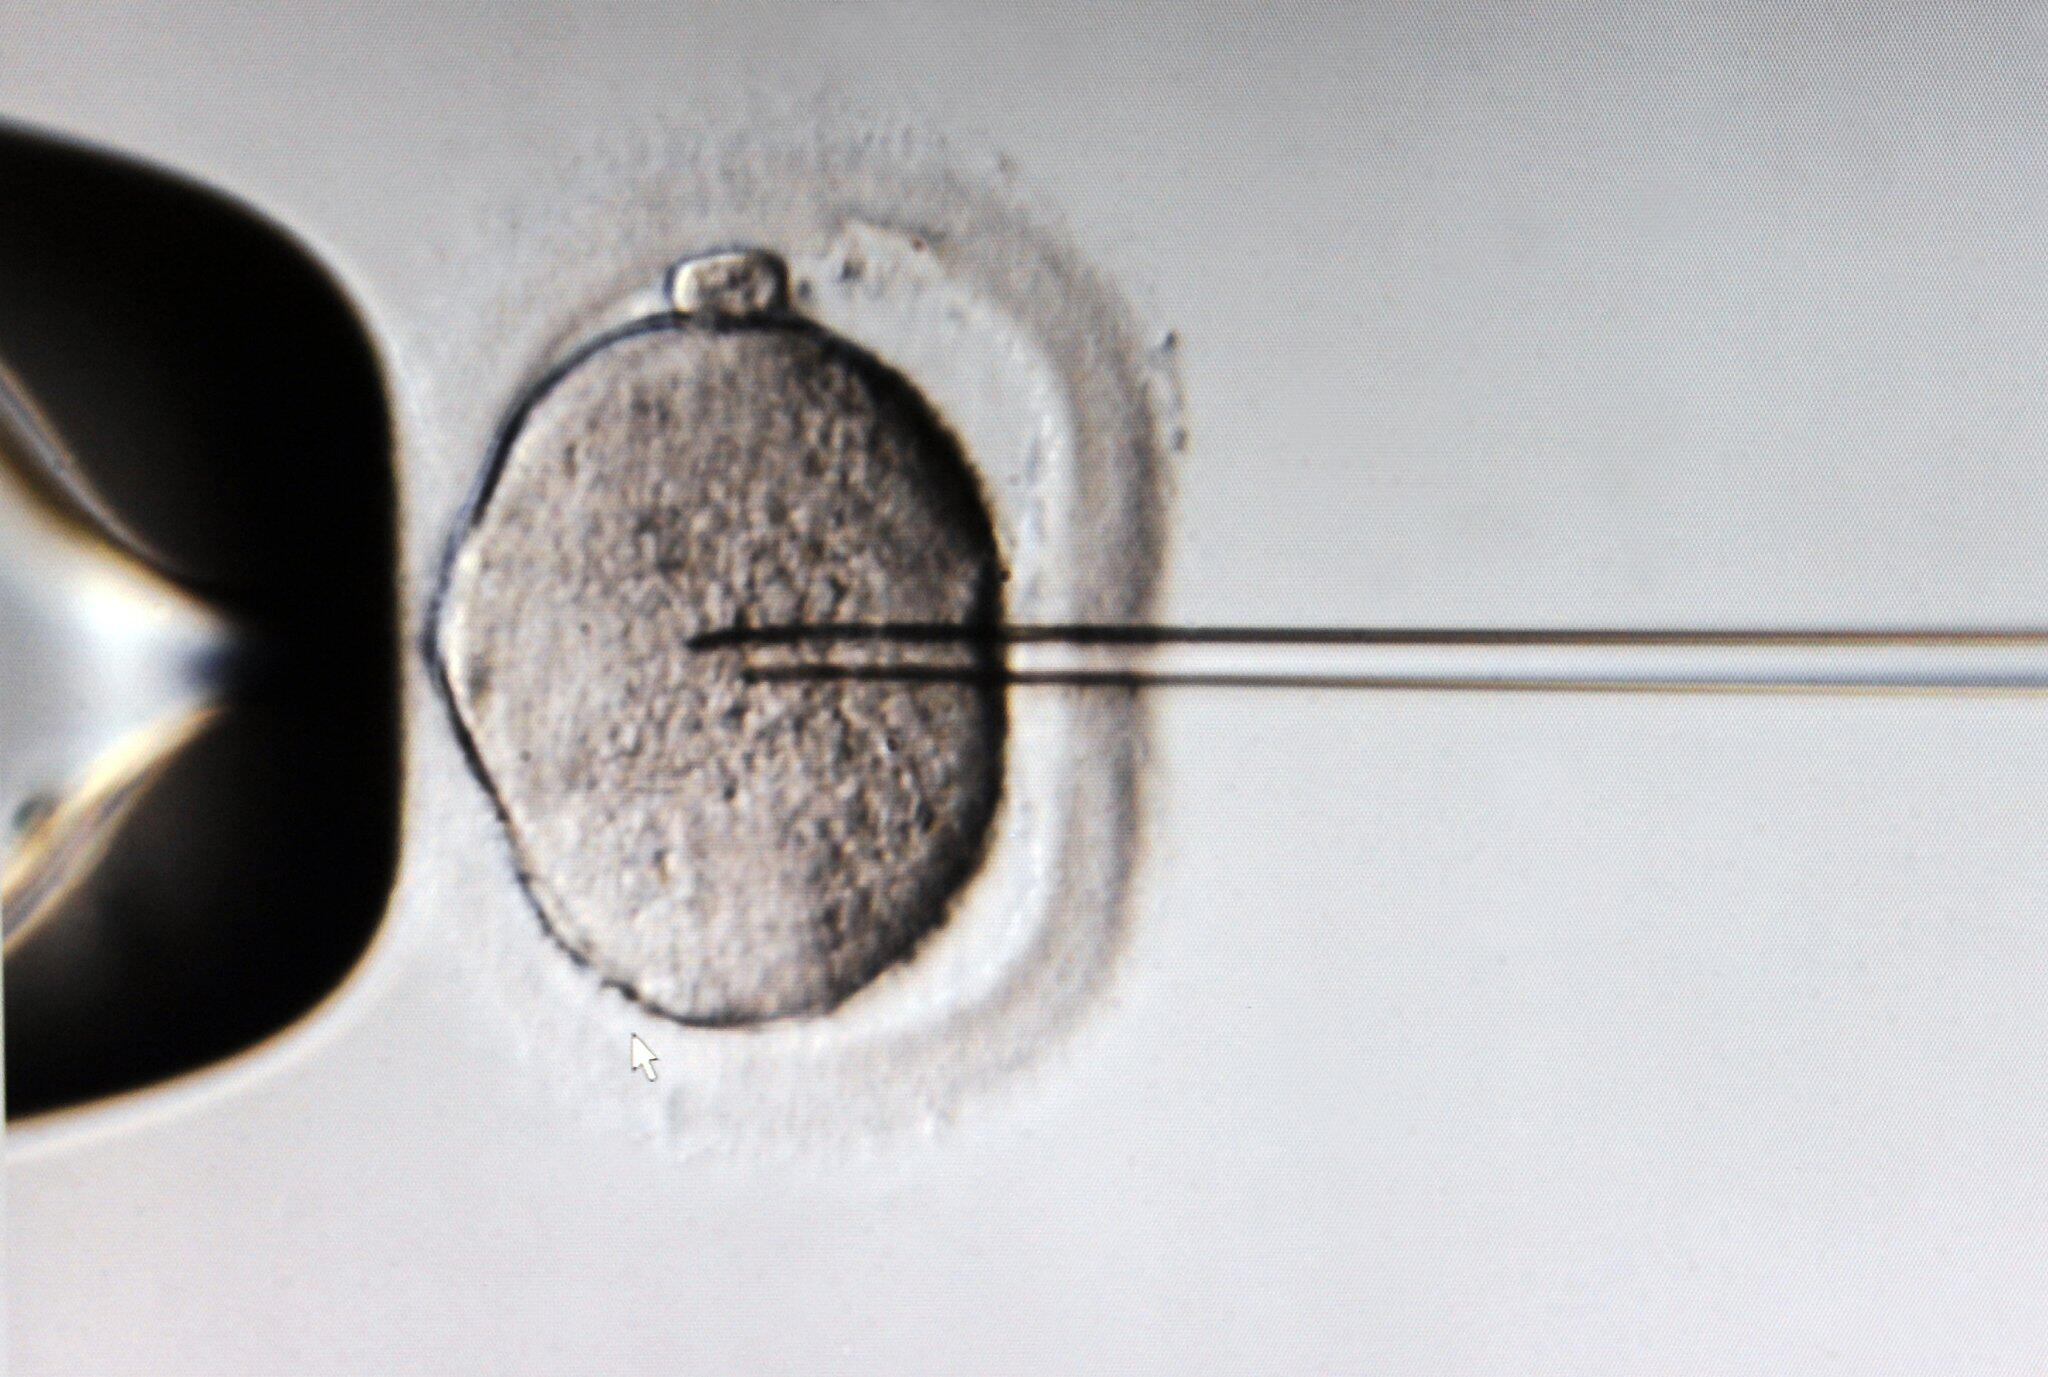 Bild zu In vitro fertilization